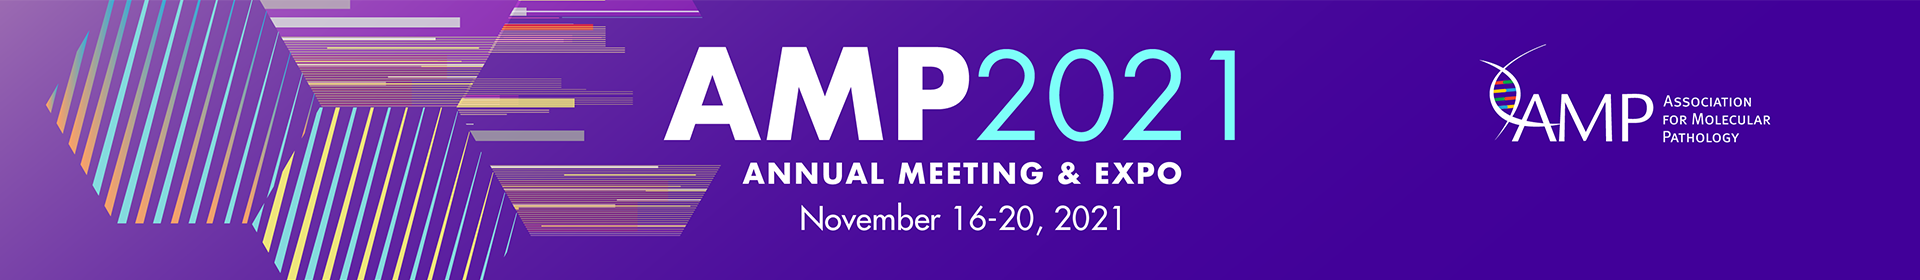 AMP 2021 - Call for Abstracts Event Banner